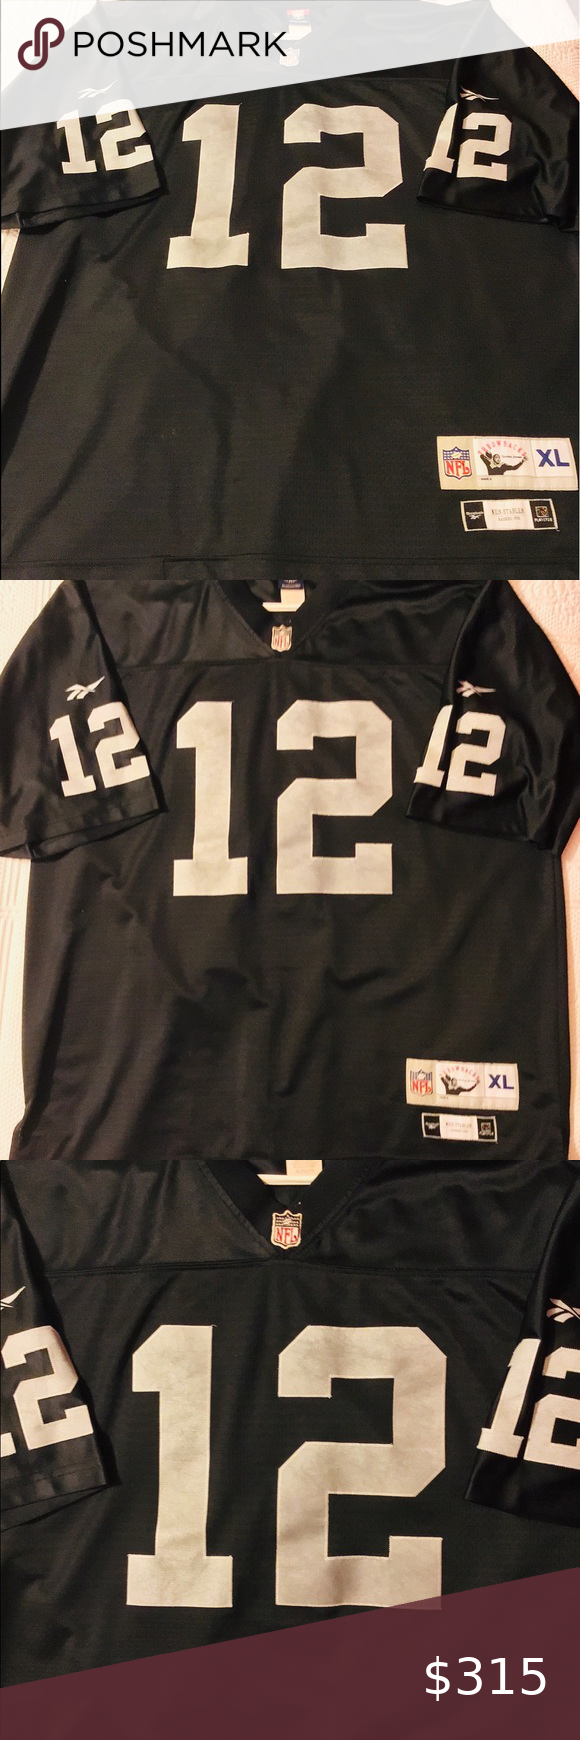 Nfl #12 Ken Stabler raiders jersey Used yet in excellent condition ...